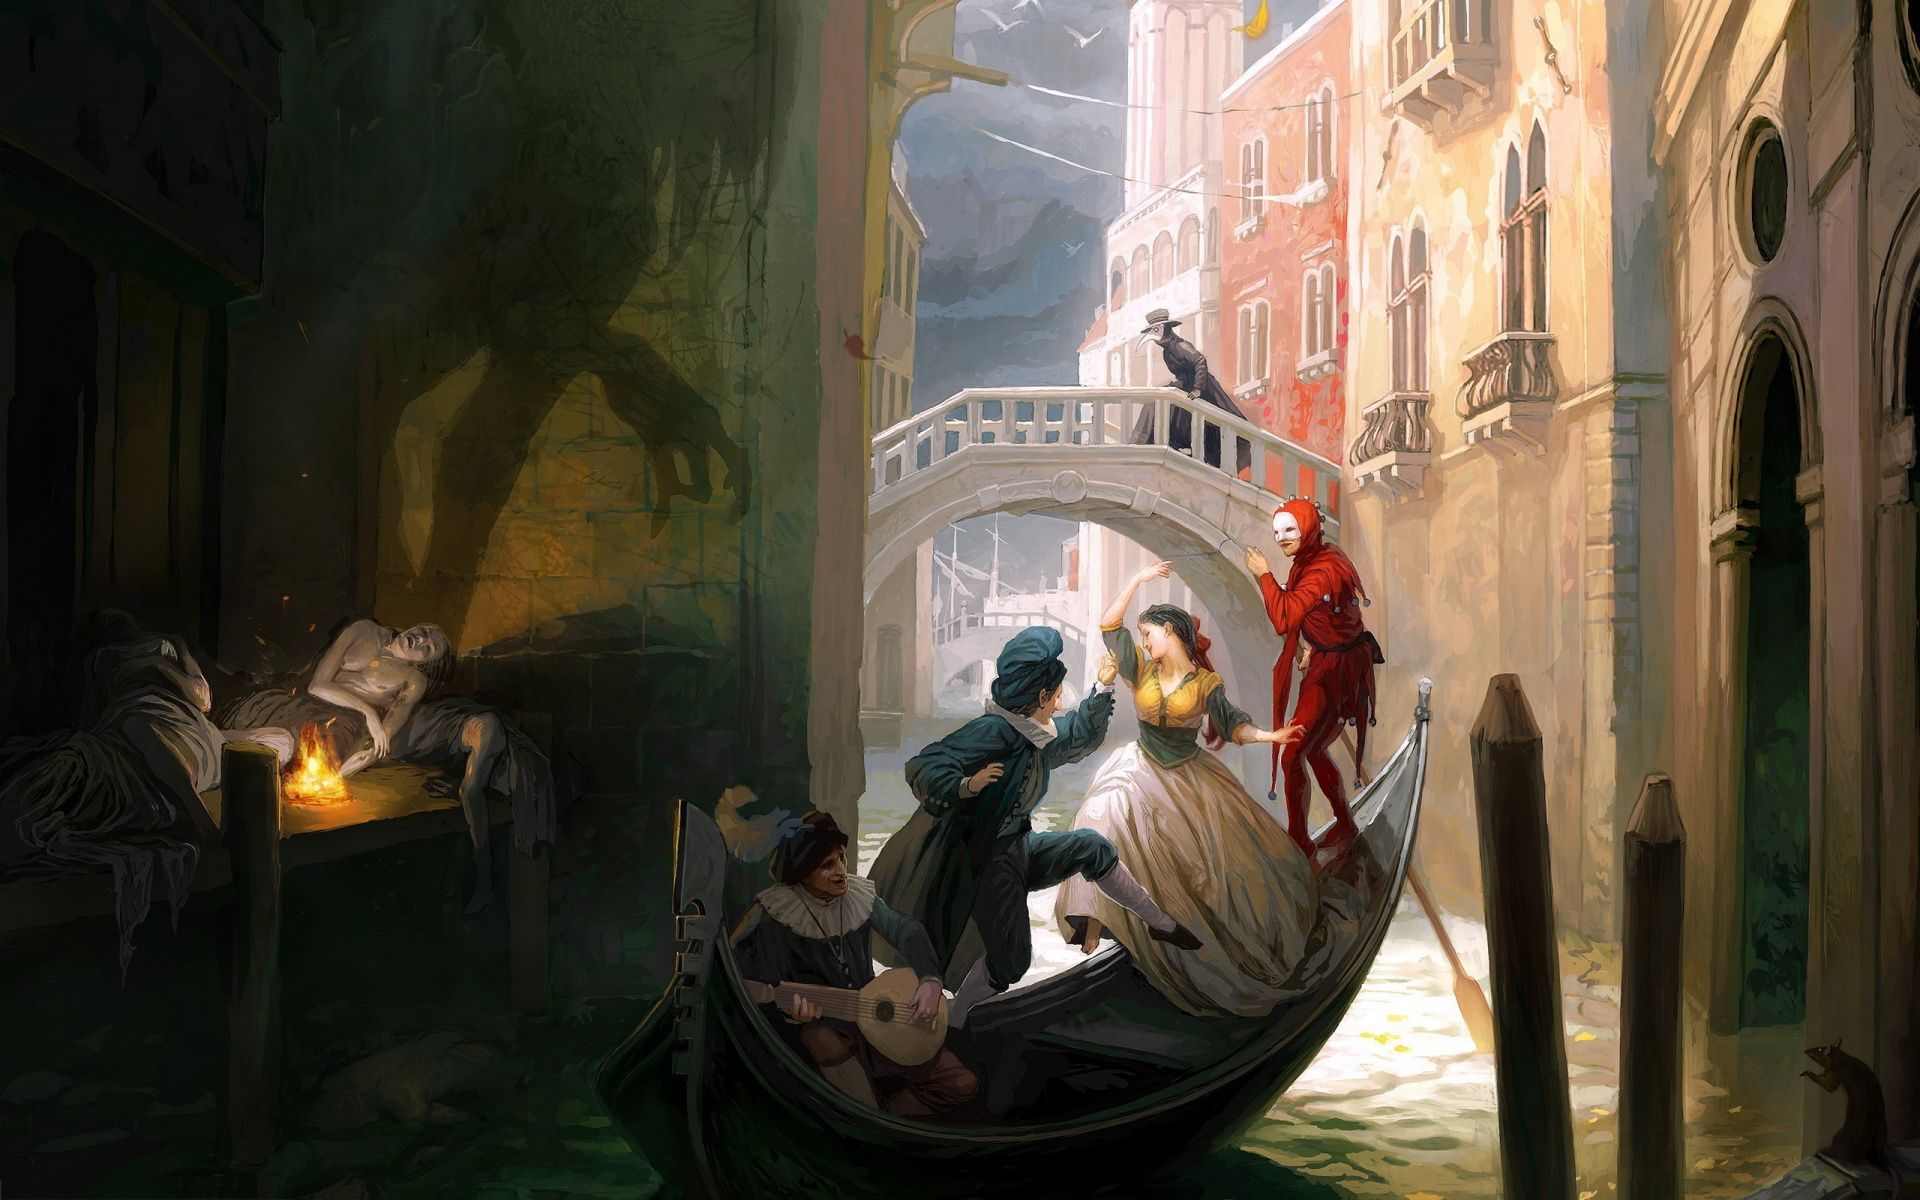 rich and poor painting 19201200 Paint Art HD Wallpapers 1920x1200